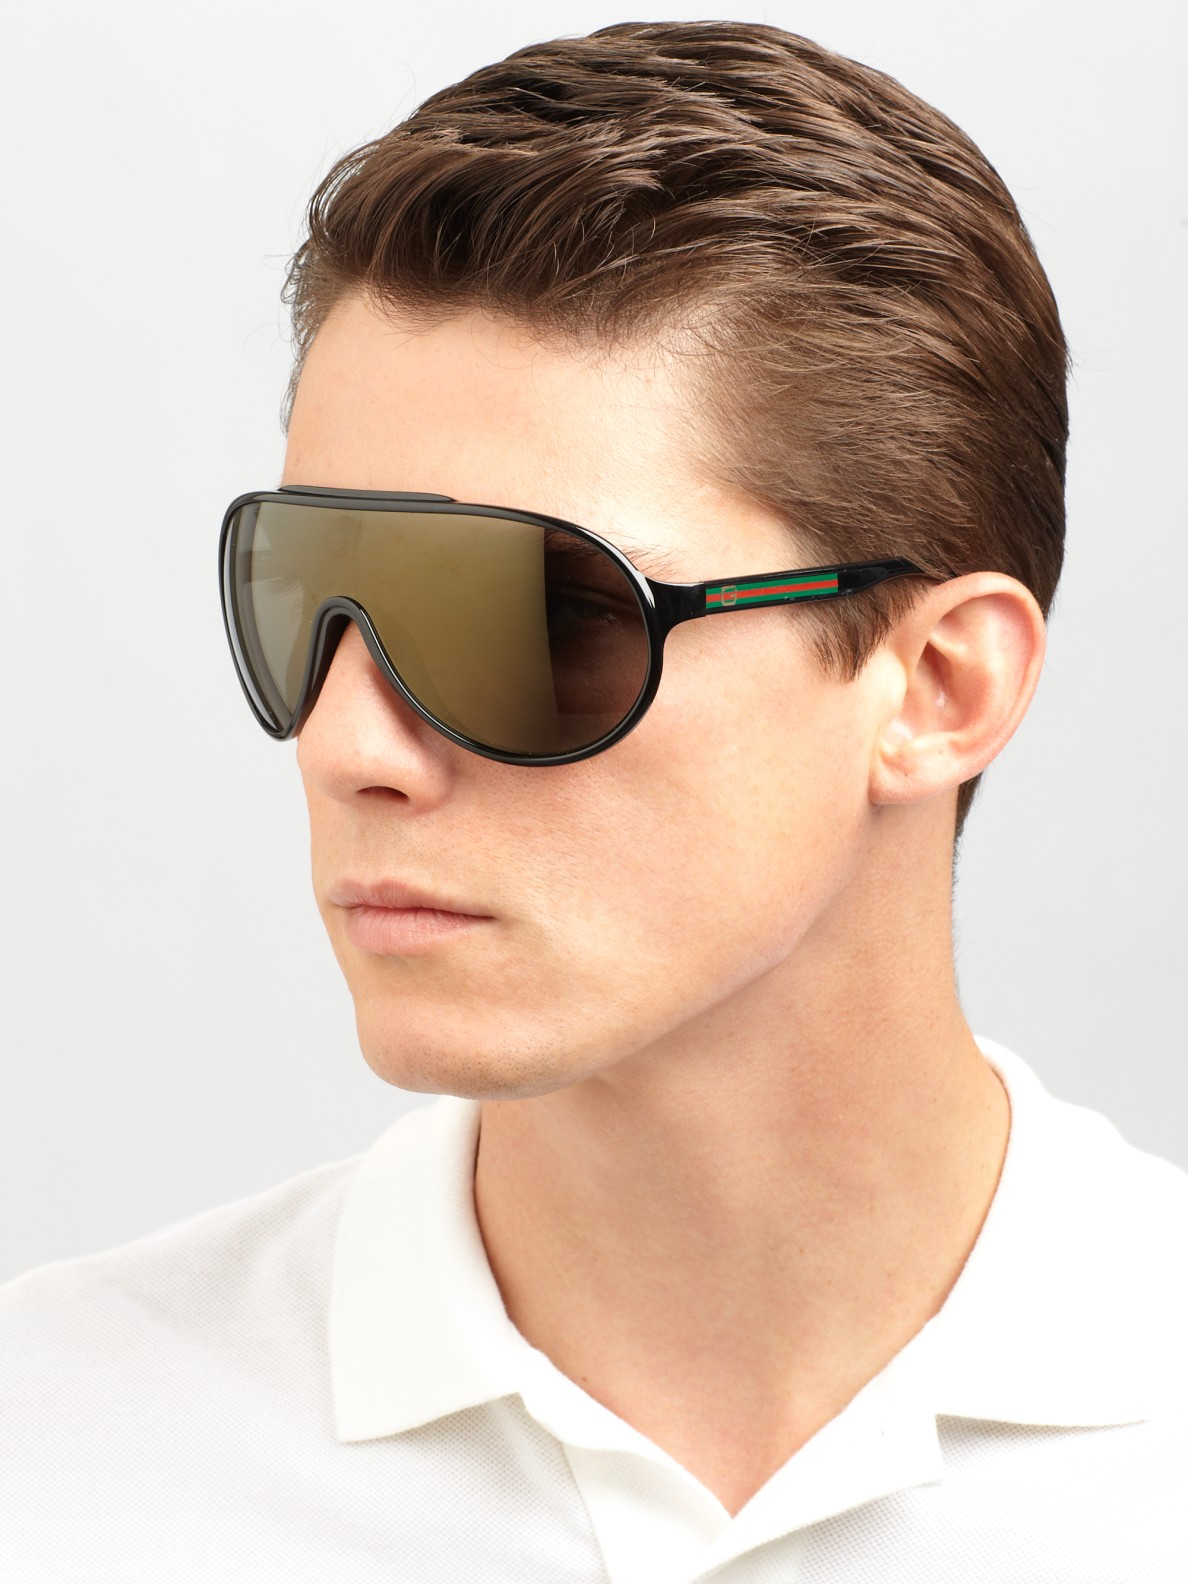 Shield Sunglasses Mens  gucci plastic shield sunglasses in black for men lyst